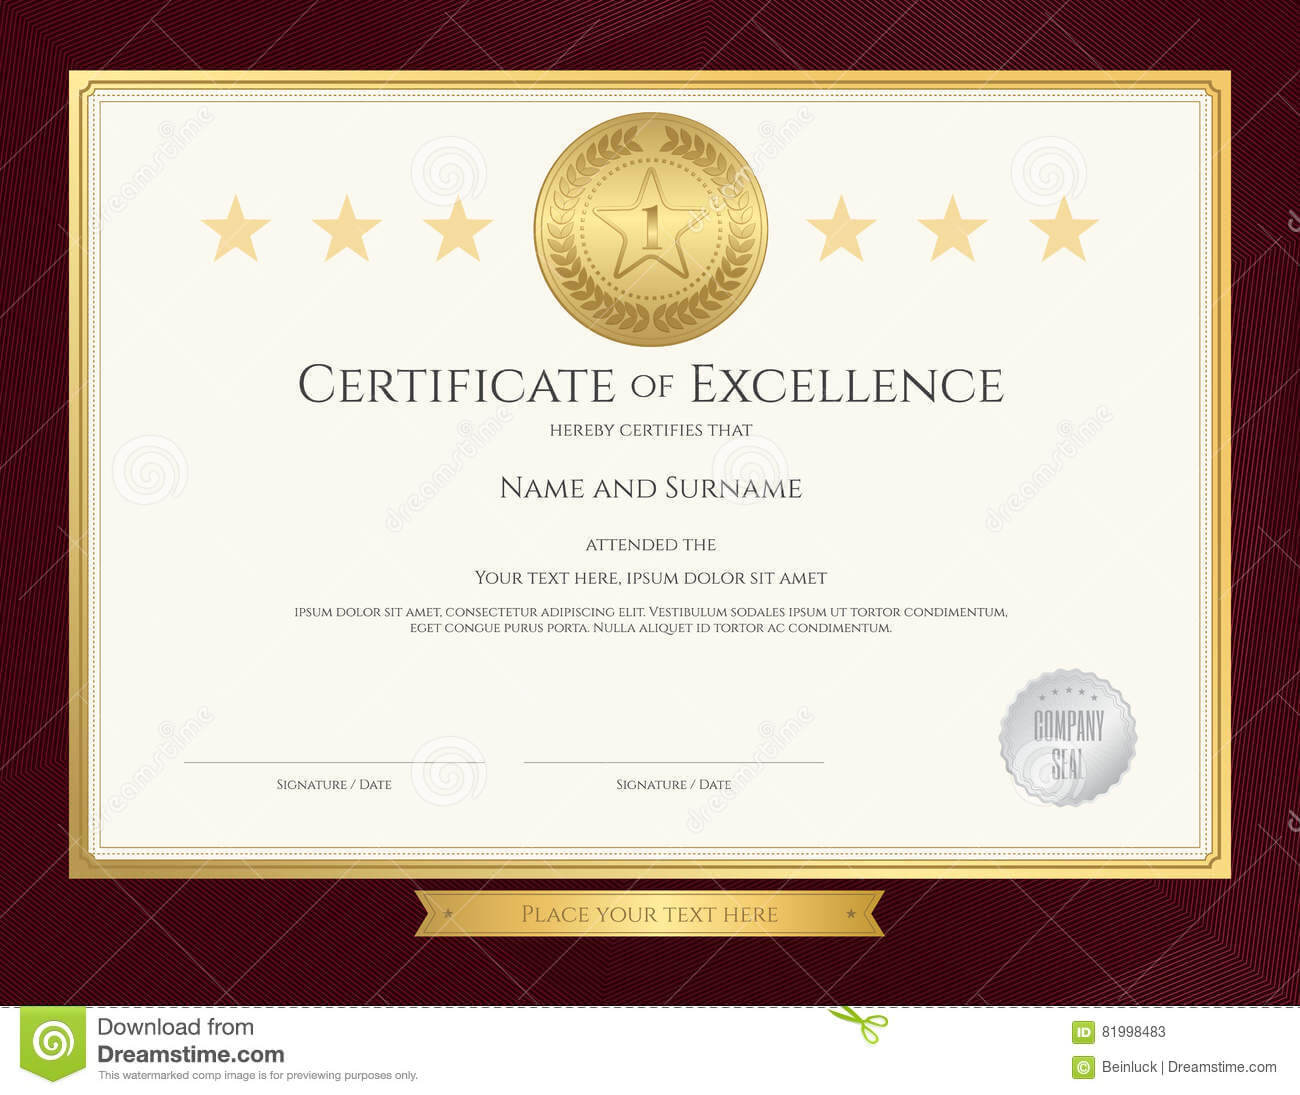 Elegant Certificate Template For Excellence, Achievement with Award Of Excellence Certificate Template